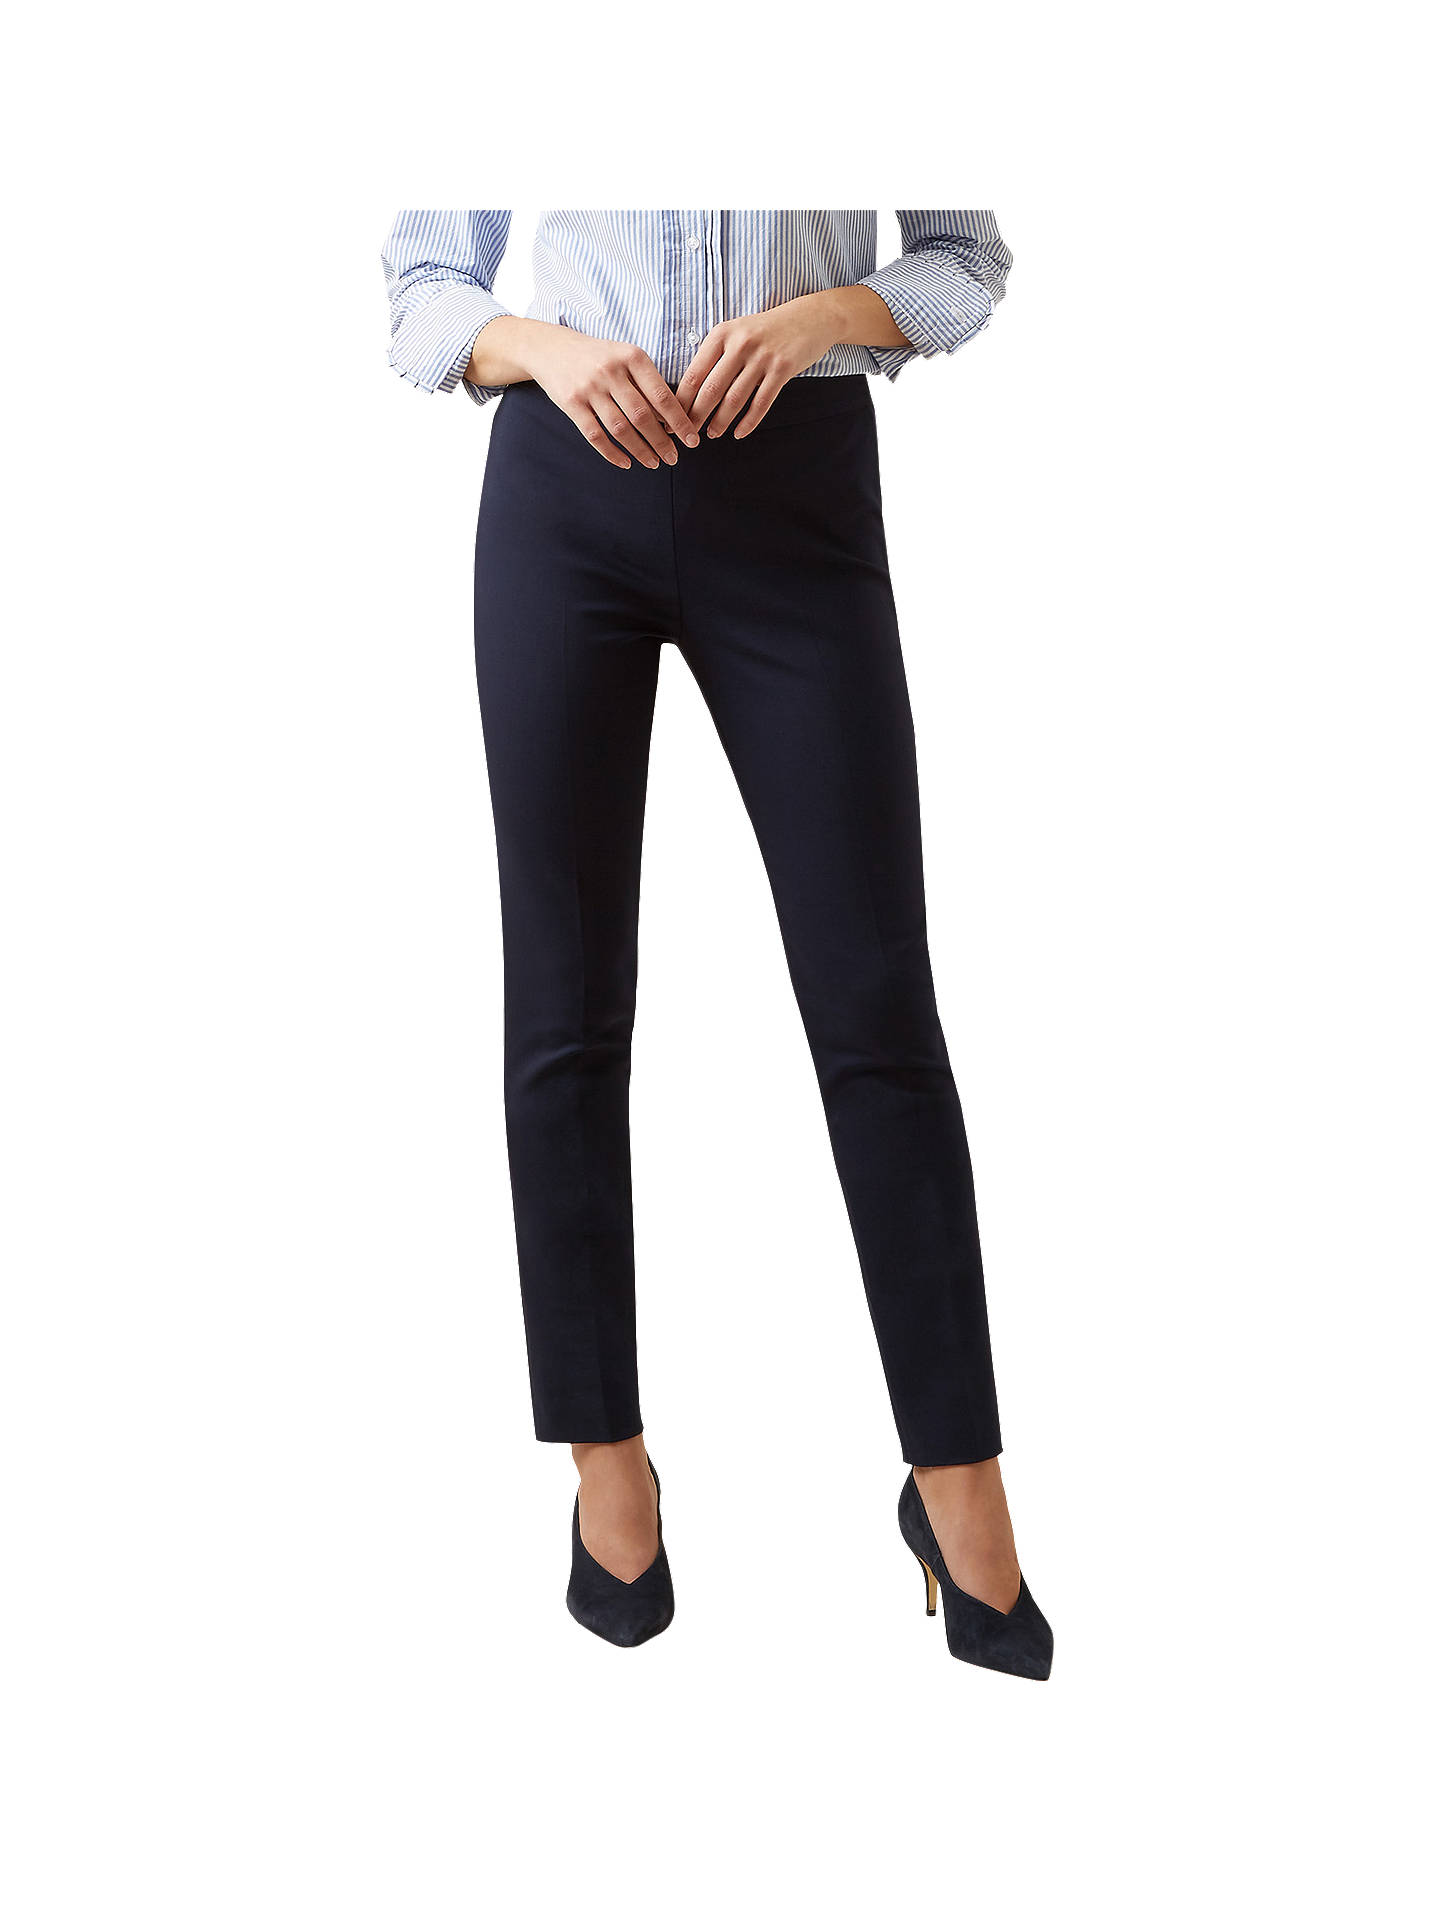 BuyHobbs Susanna Trousers, Navy, 6 Online at johnlewis.com